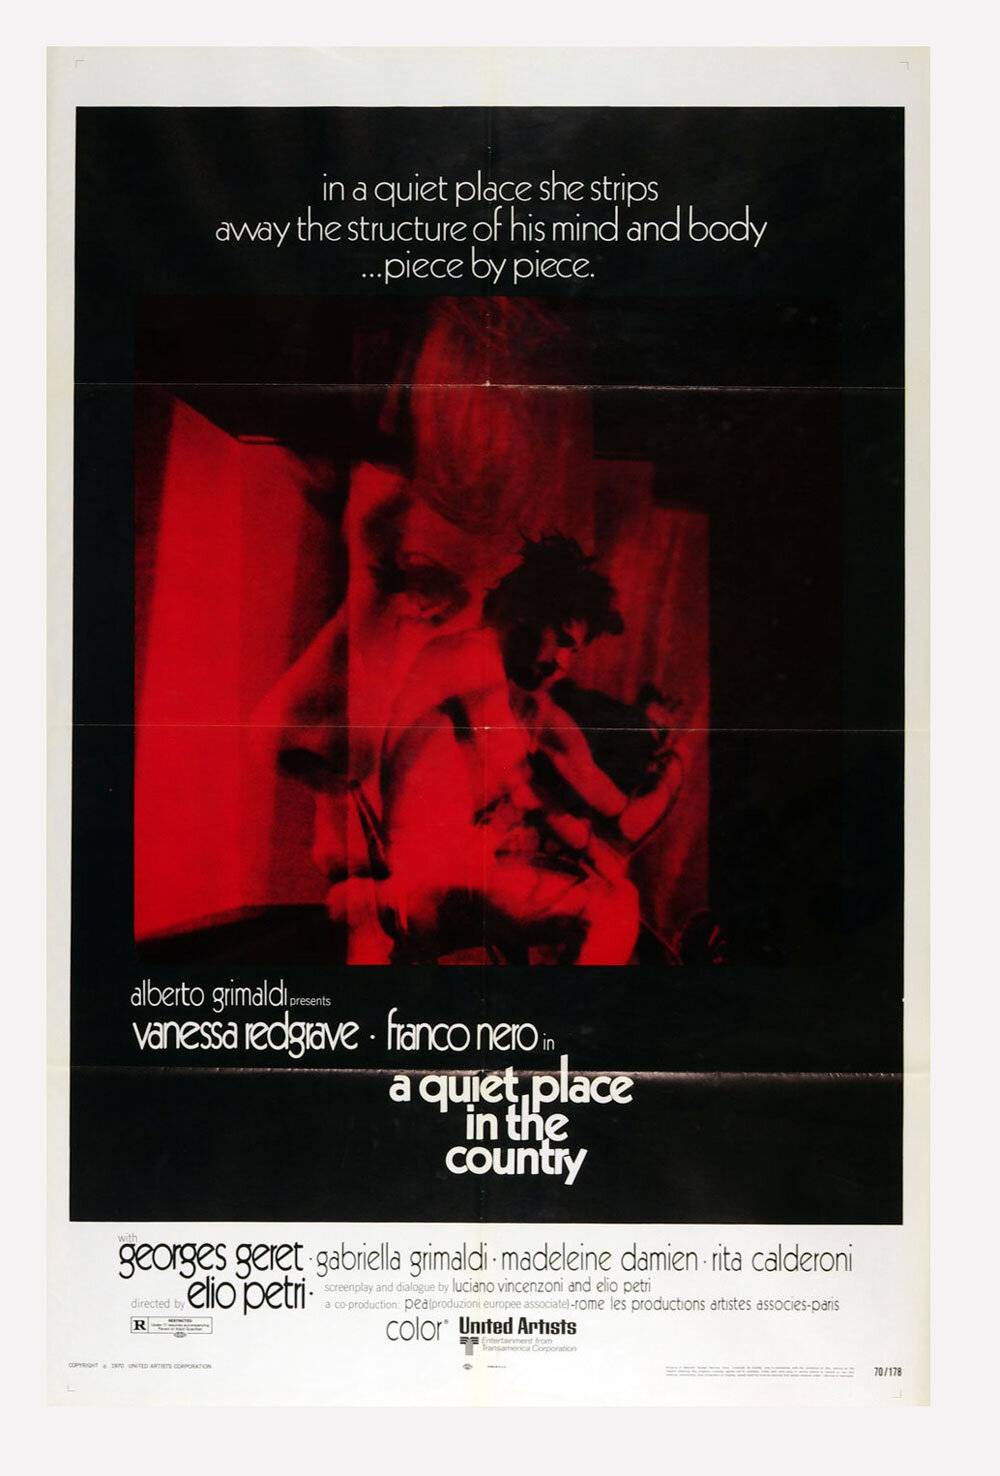 A Quiet Place in the Country Movie Poster 1970 Vanessa Redgrave Franco Nero 27 x 41